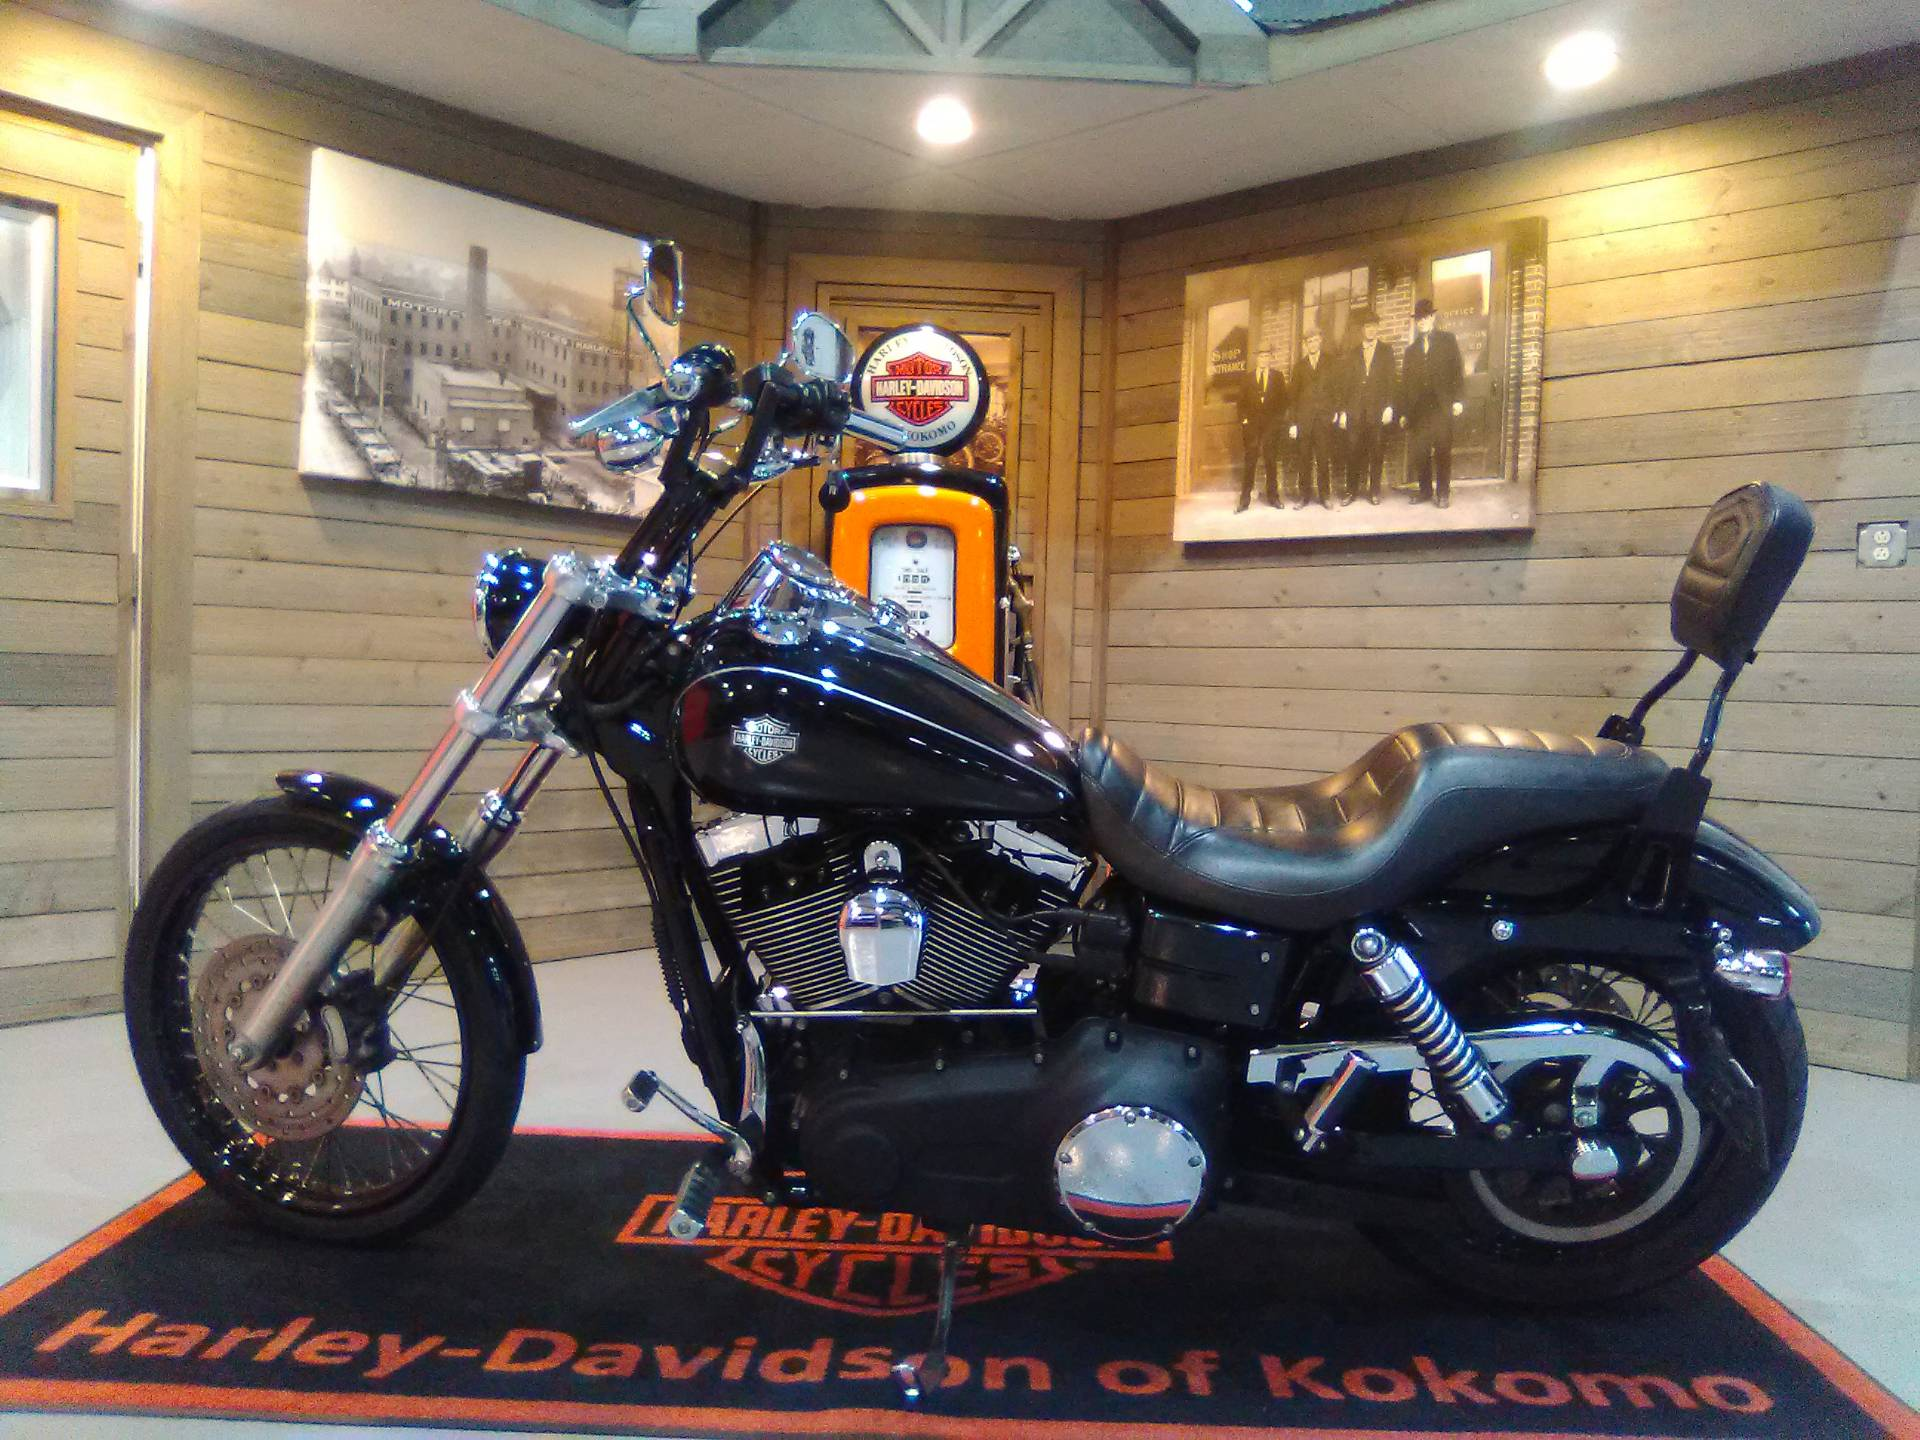 2010 Harley-Davidson Dyna® Wide Glide® in Kokomo, Indiana - Photo 7